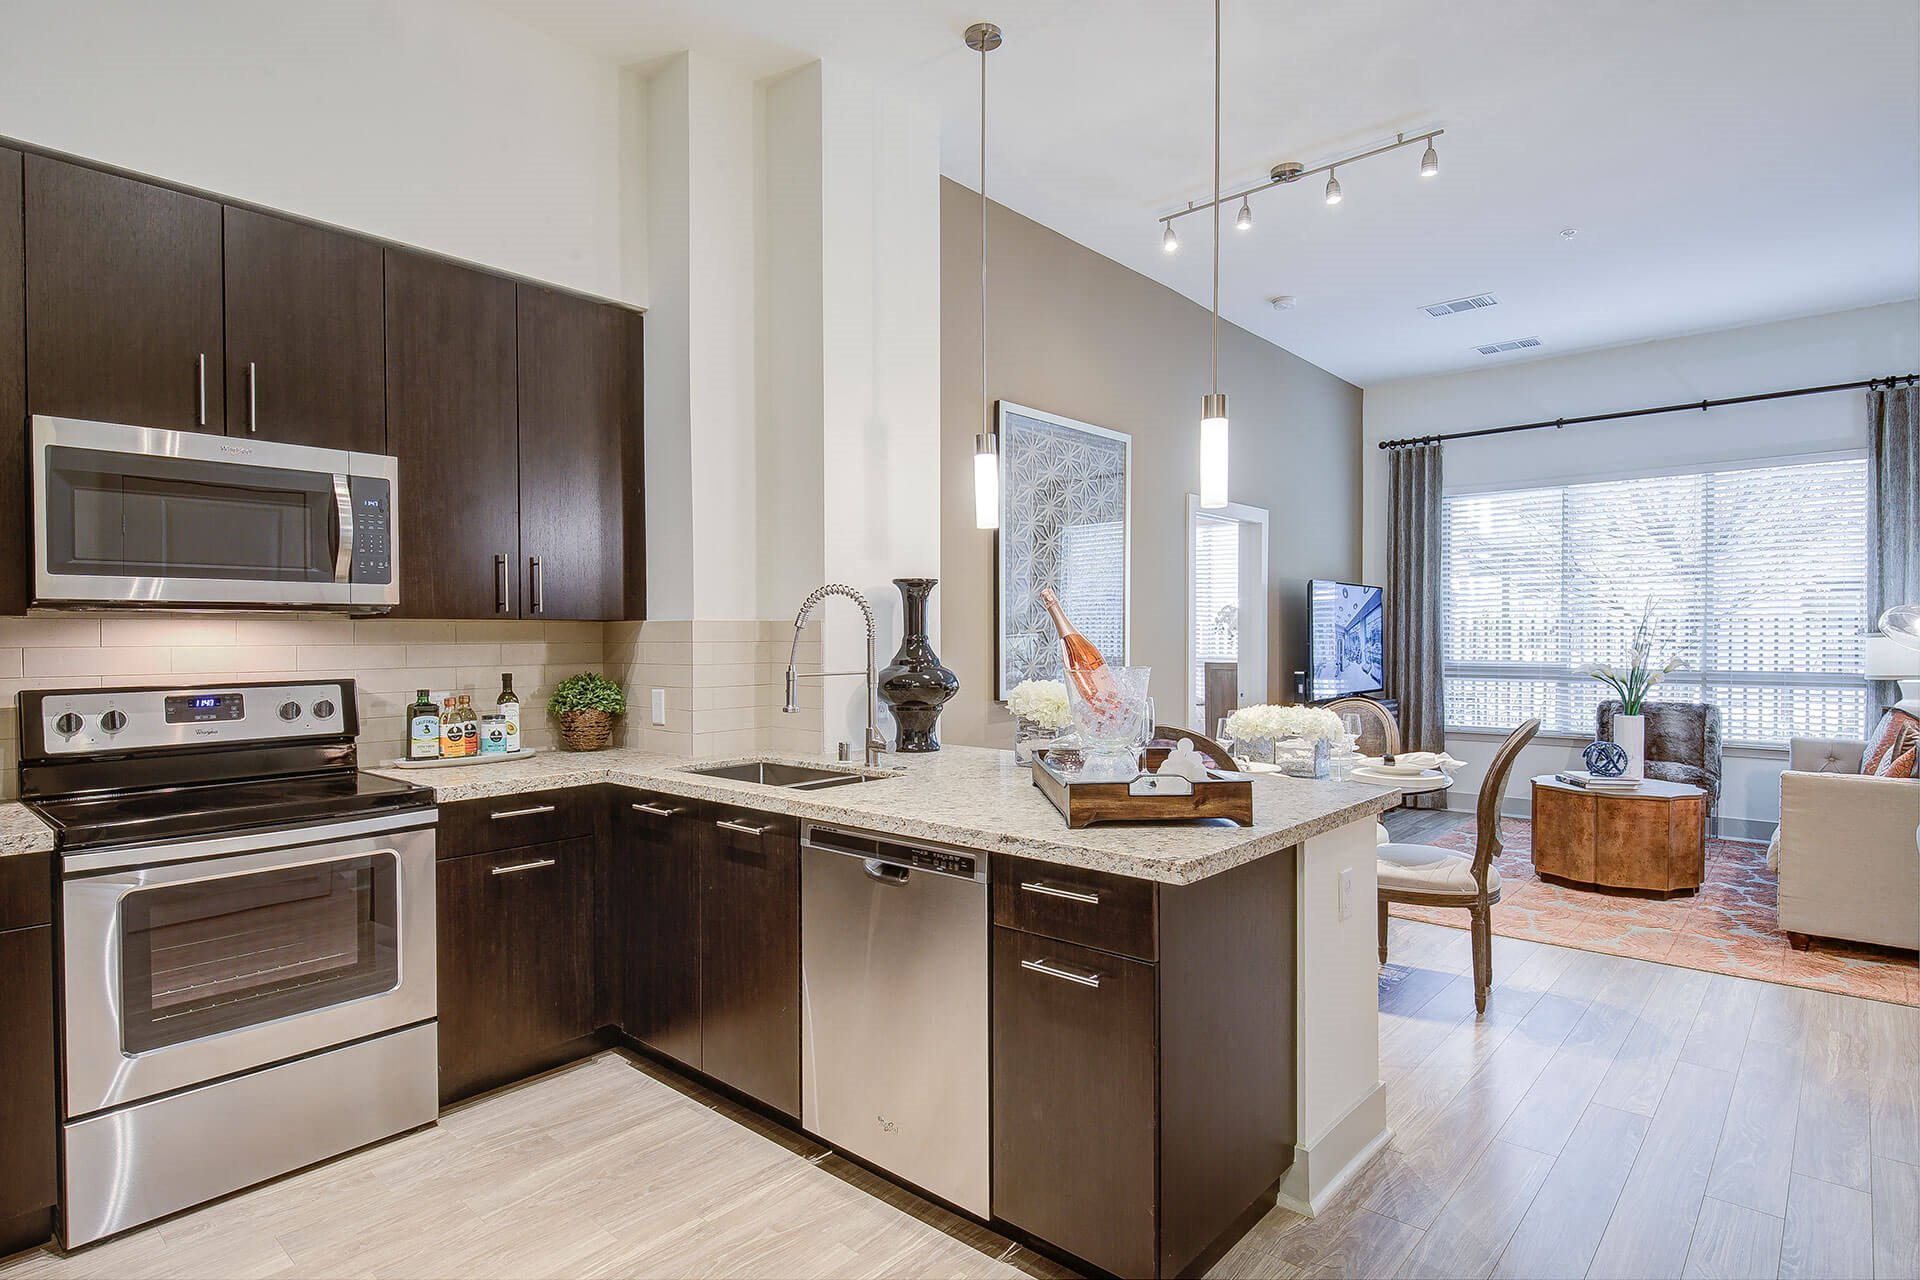 Granite and quartz countertops, at Cannery Park by Windsor, 95112, CA